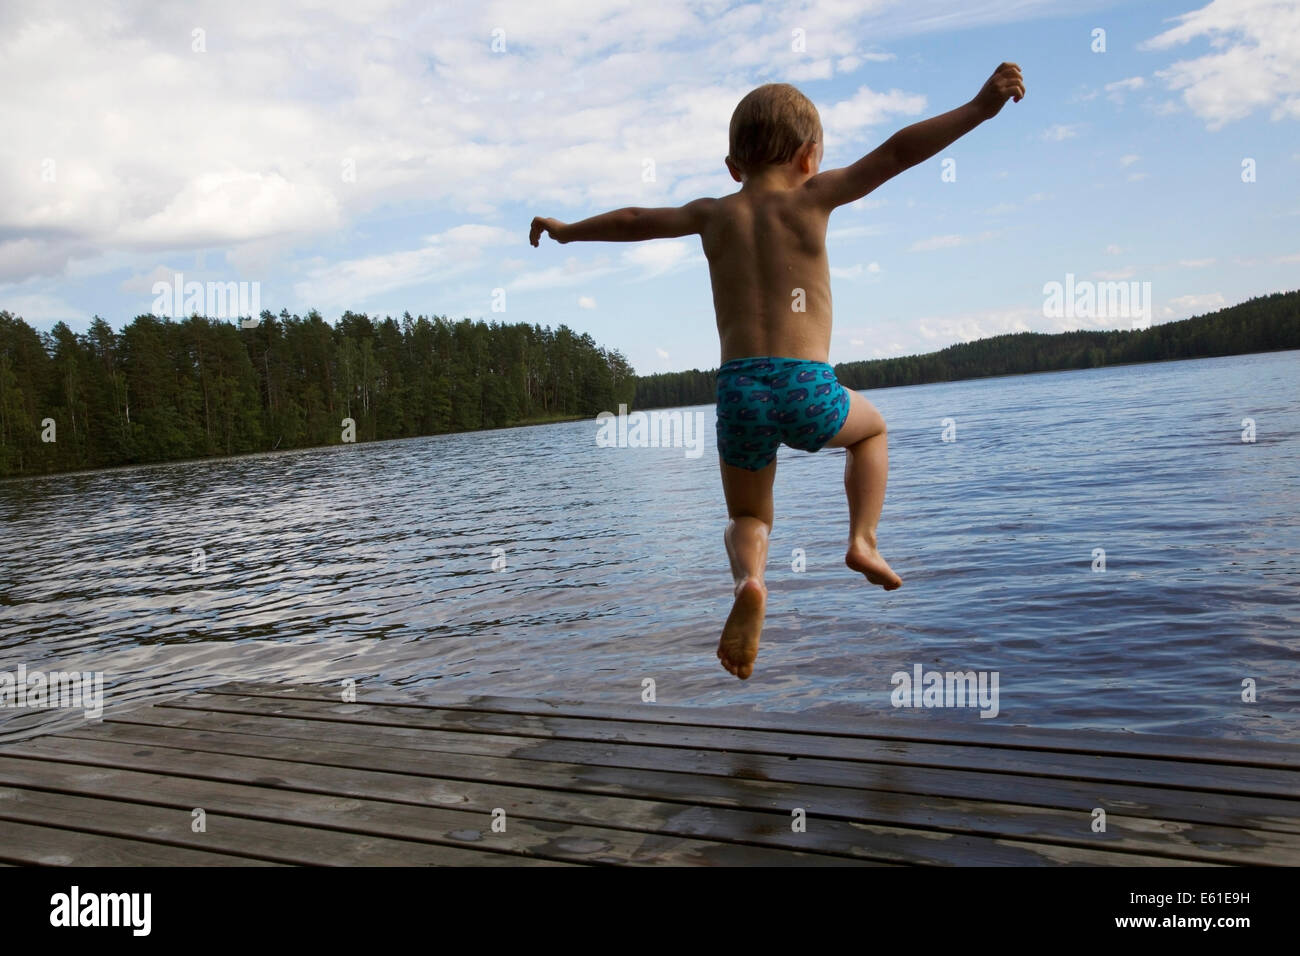 A boy jumping into water off the pier in summer in Finland - Stock Image